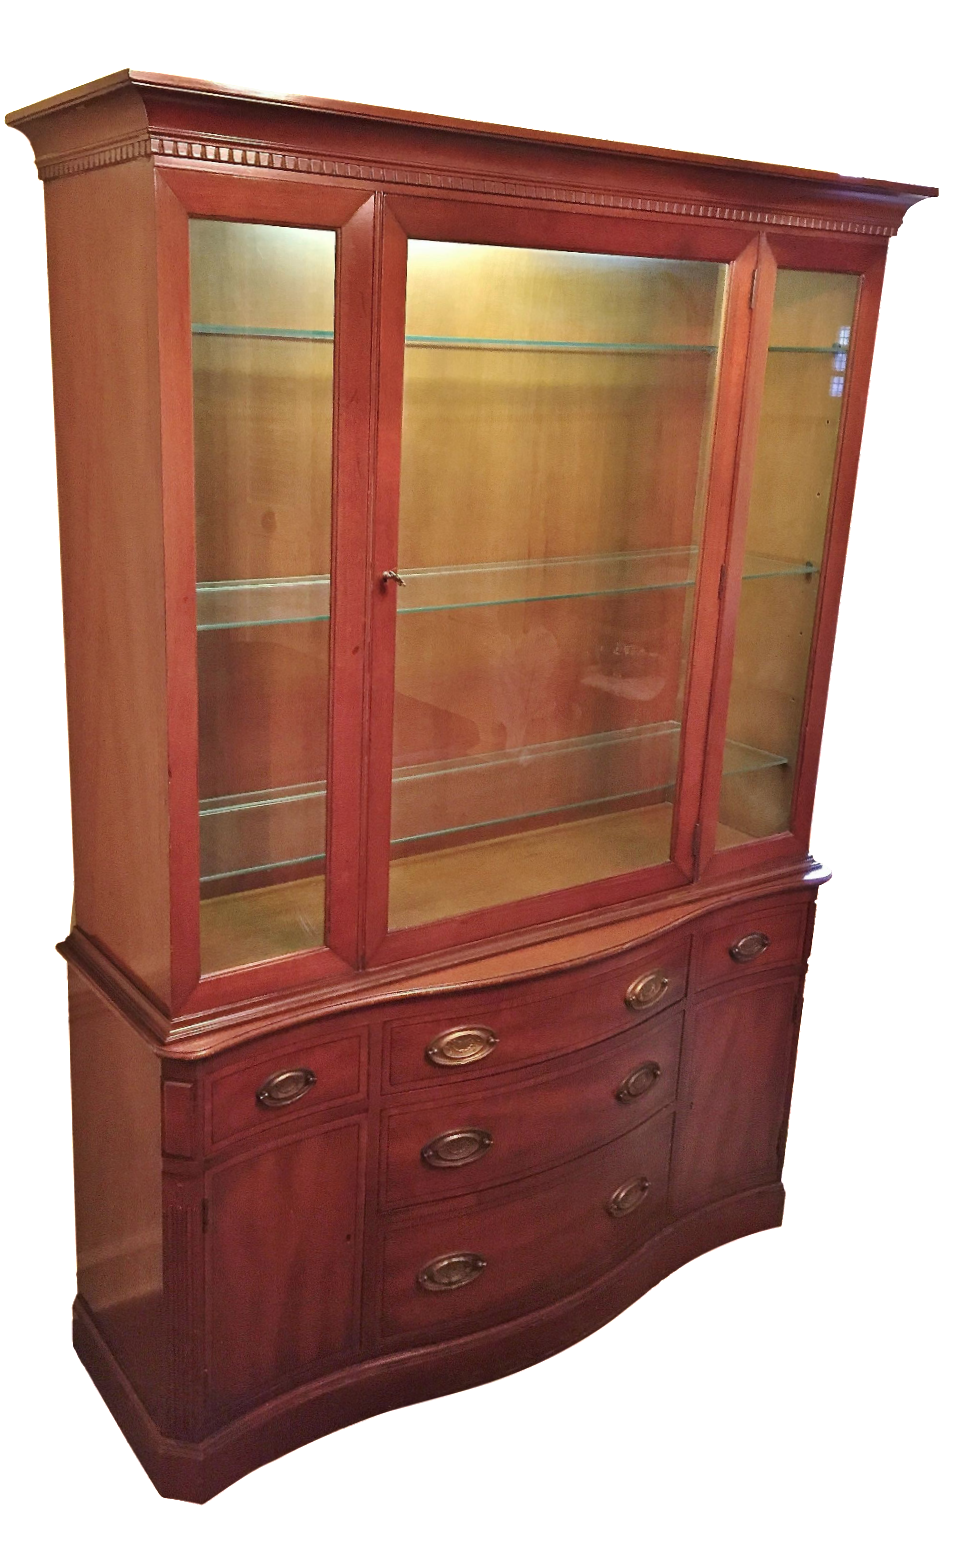 henredon heritage regency style lighted china cabinet | chairish